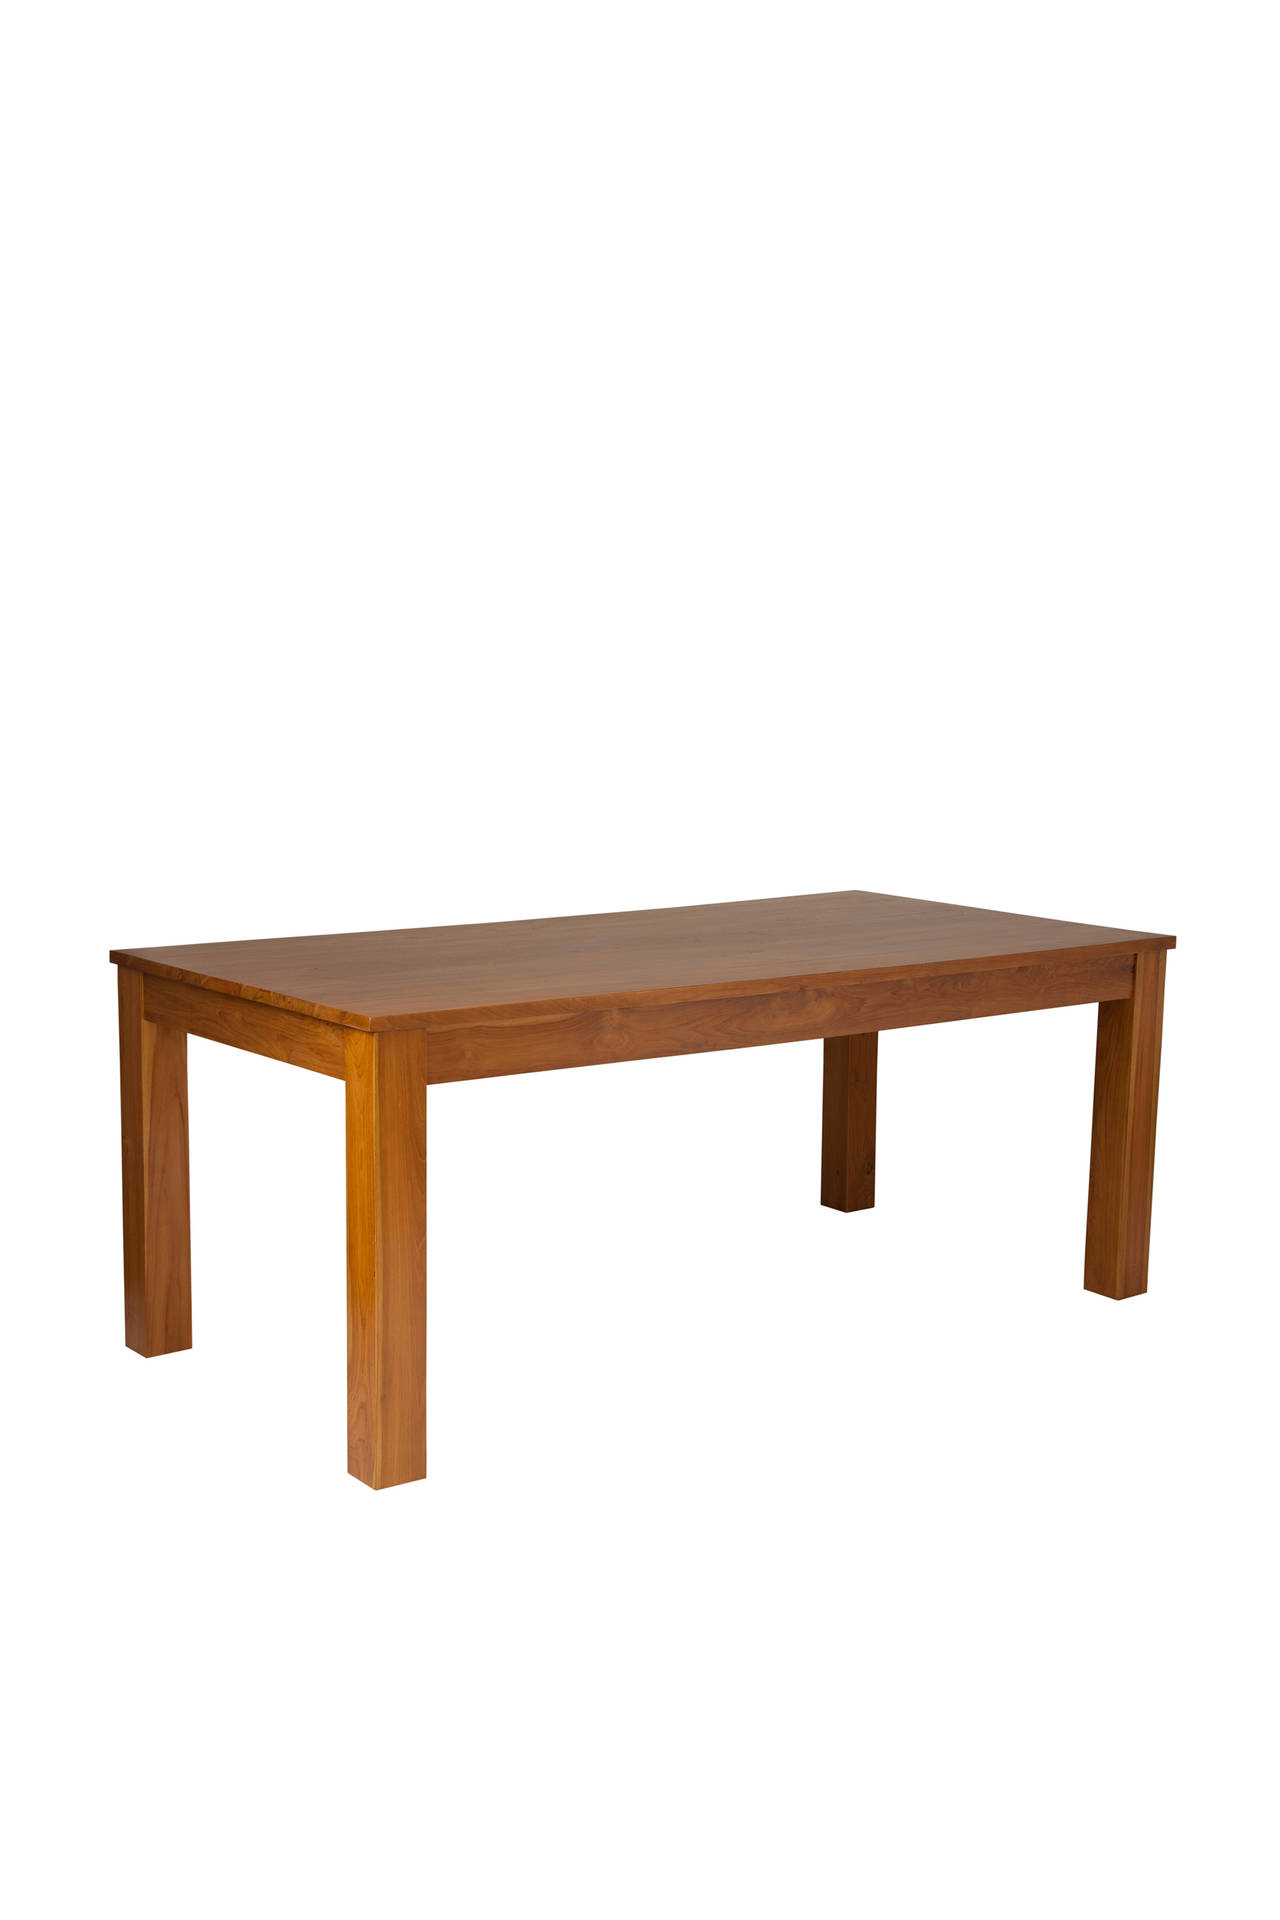 STRAIGHT DINING TABLE 200